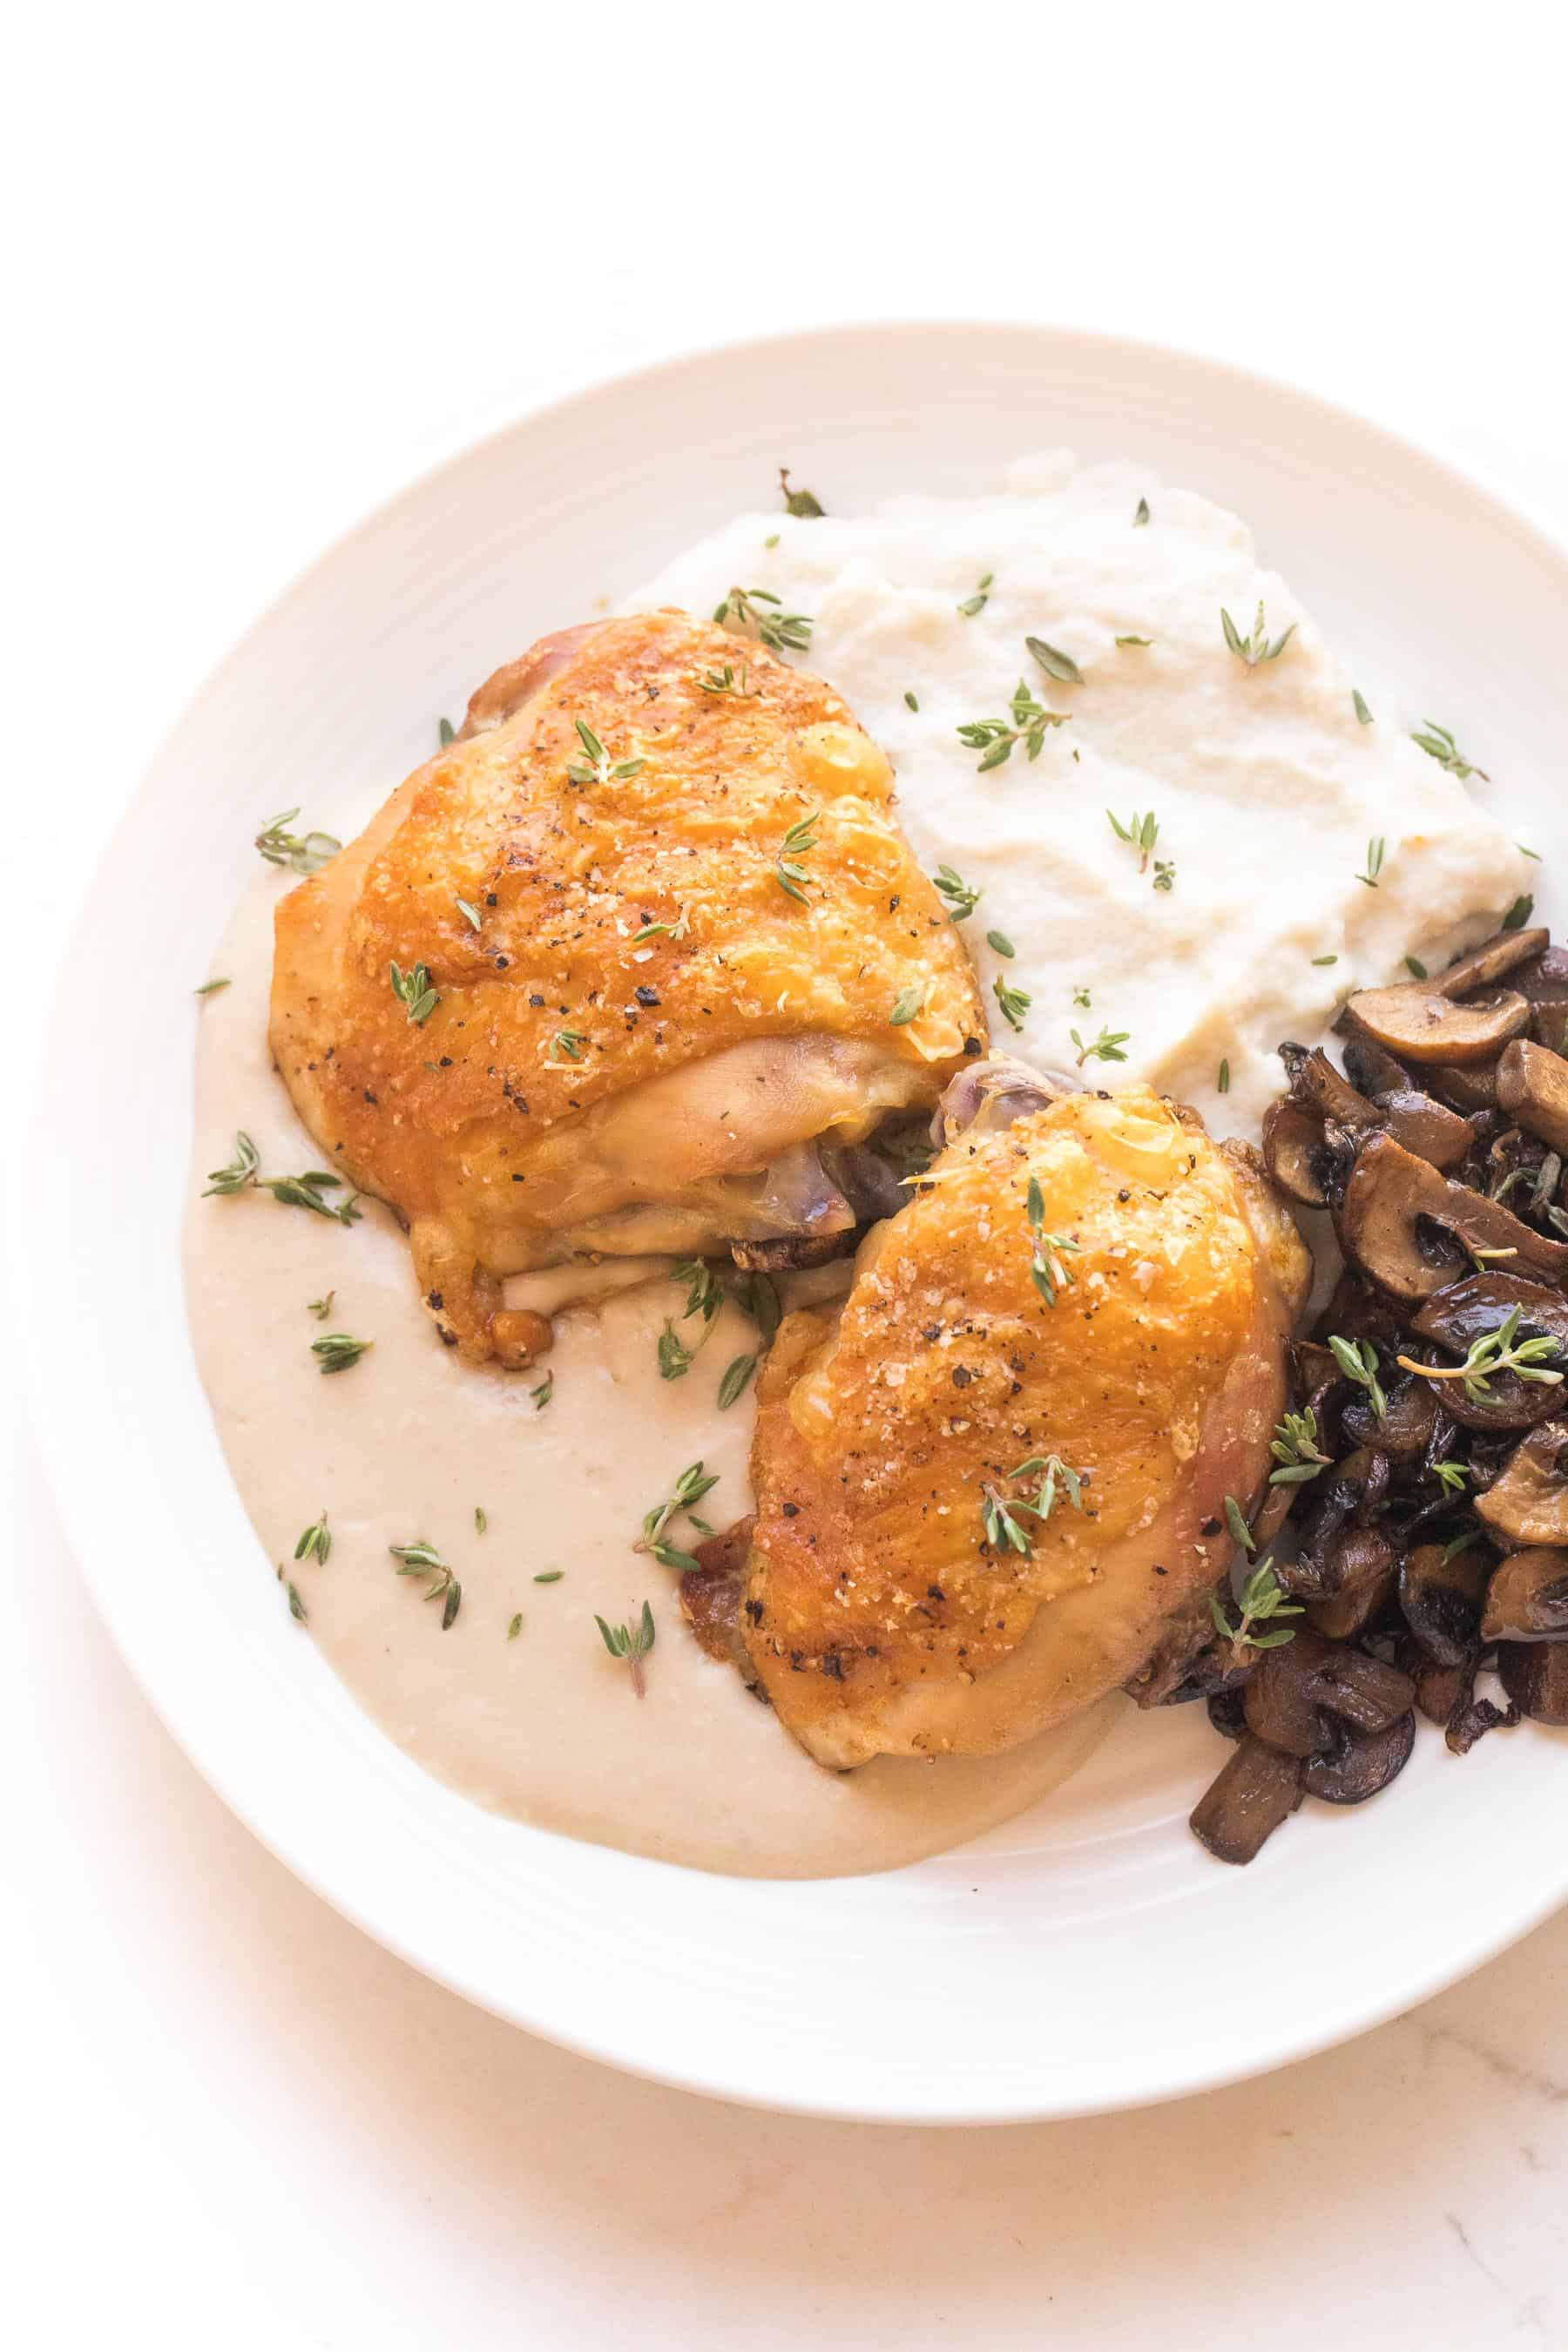 Crispy chicken thighs with mashed caulilfower + sauteed mushrooms with mustard sauce